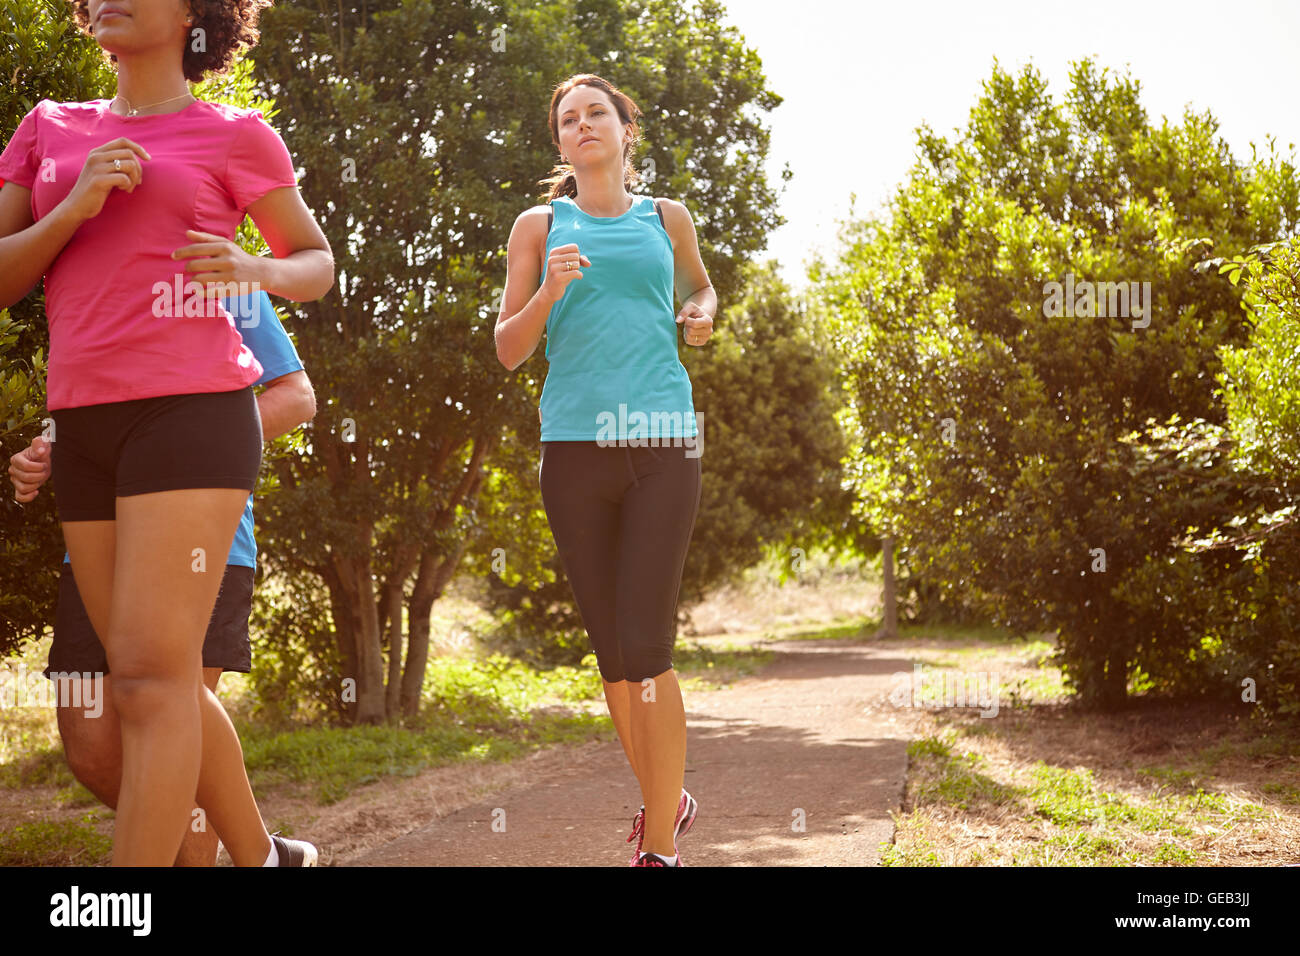 Group of three runners on a natural running trail in daylight surrounded by trees and bushes in the late morning - Stock Image